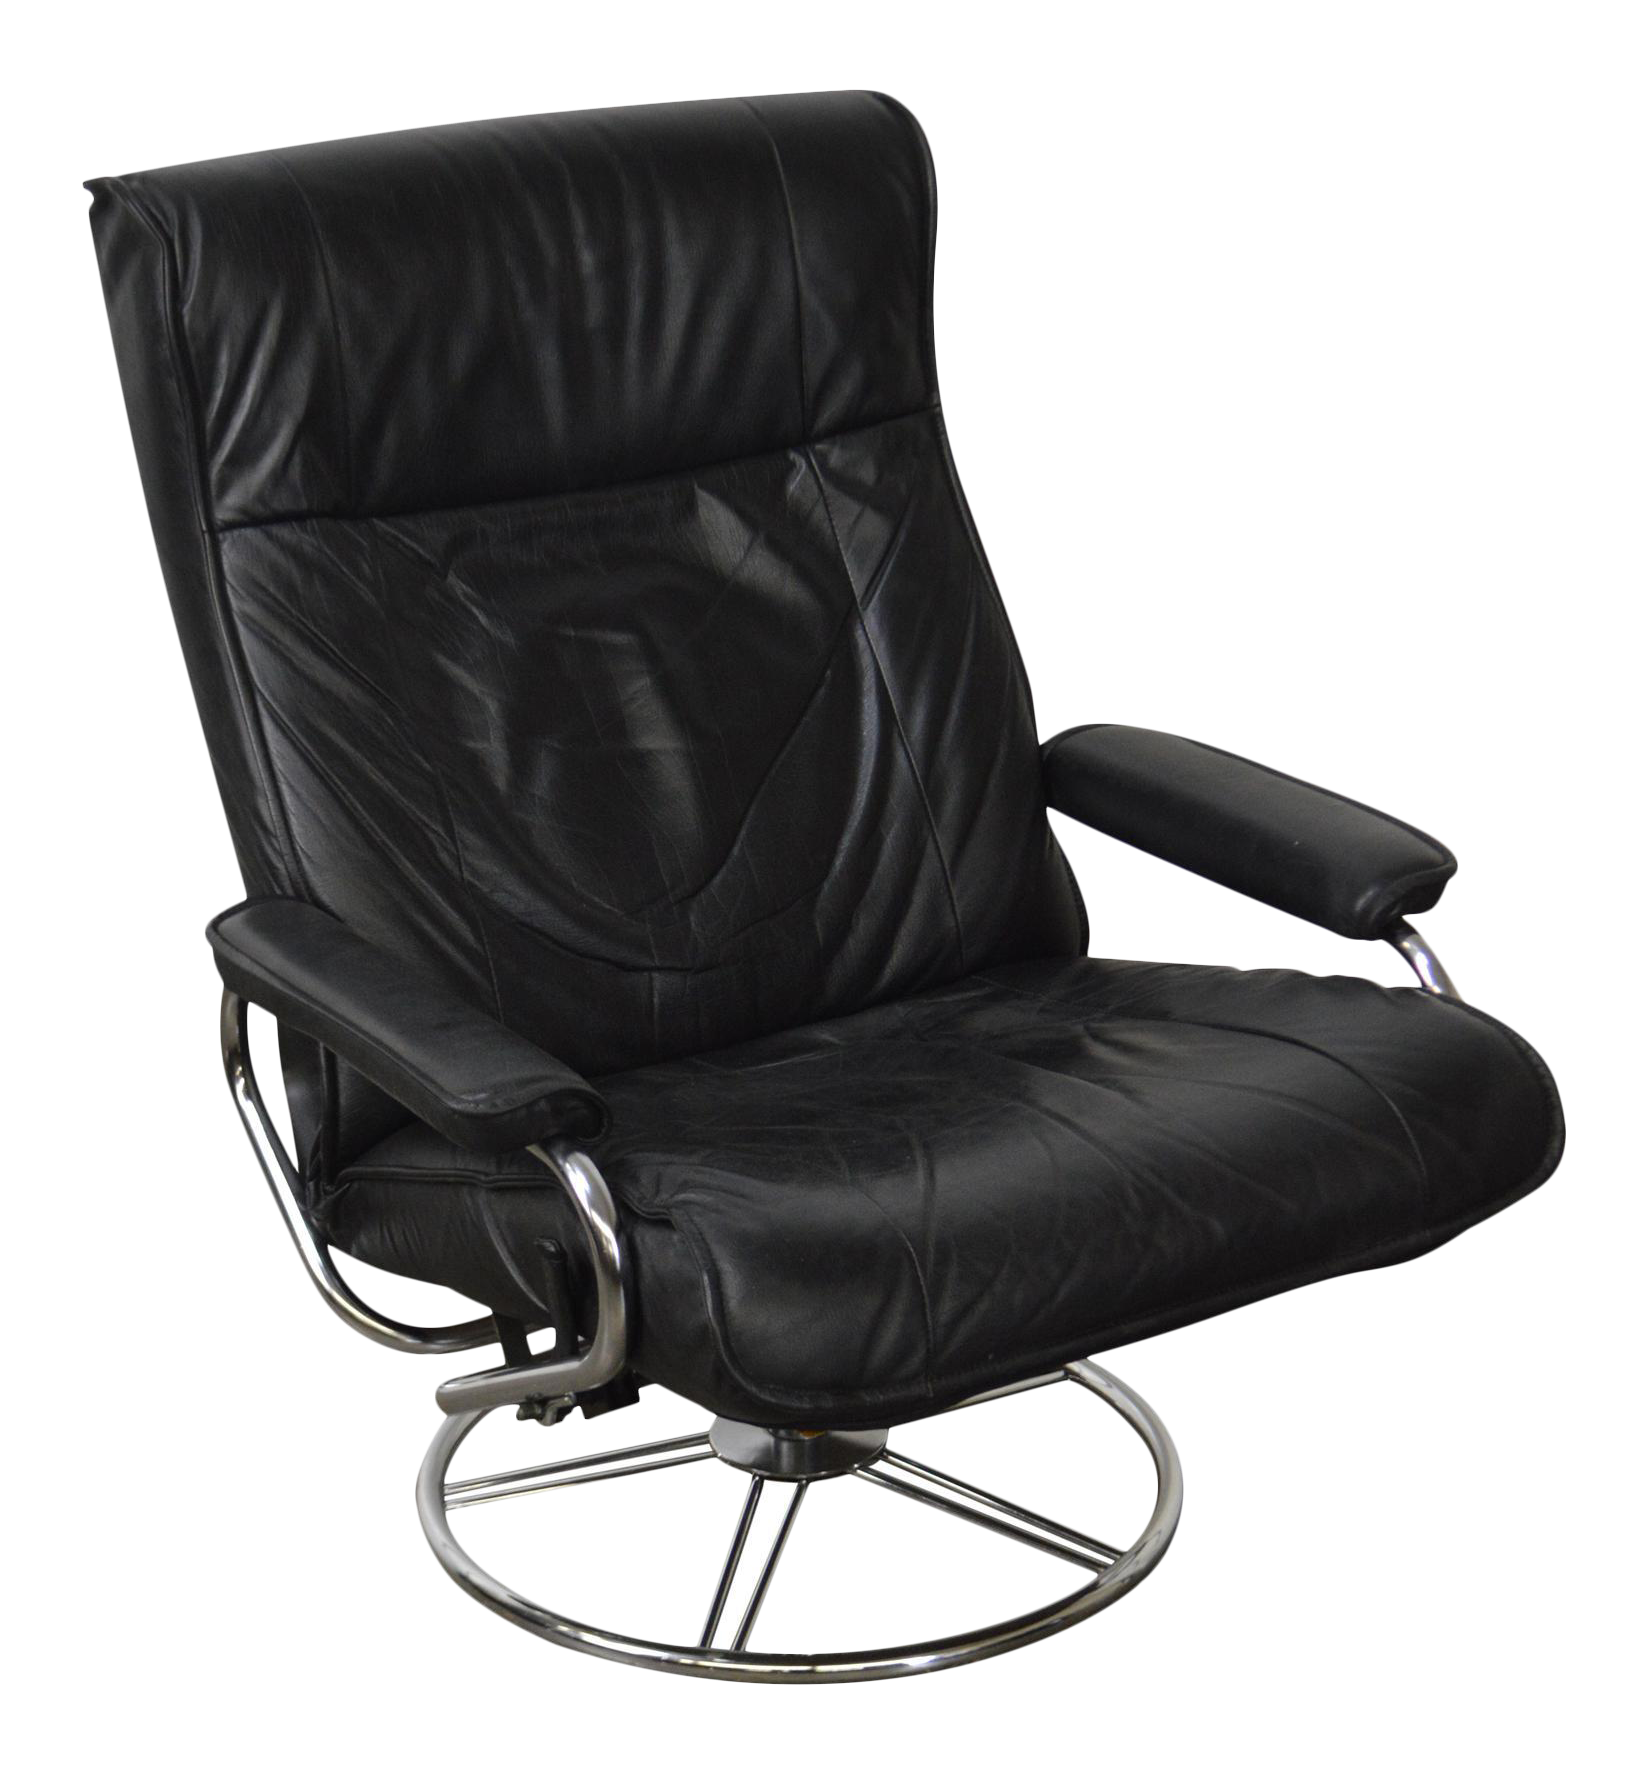 Kebe Black Leather Mid-Century Modern Style Swivel Reclining Lounge Chair |  Chairish